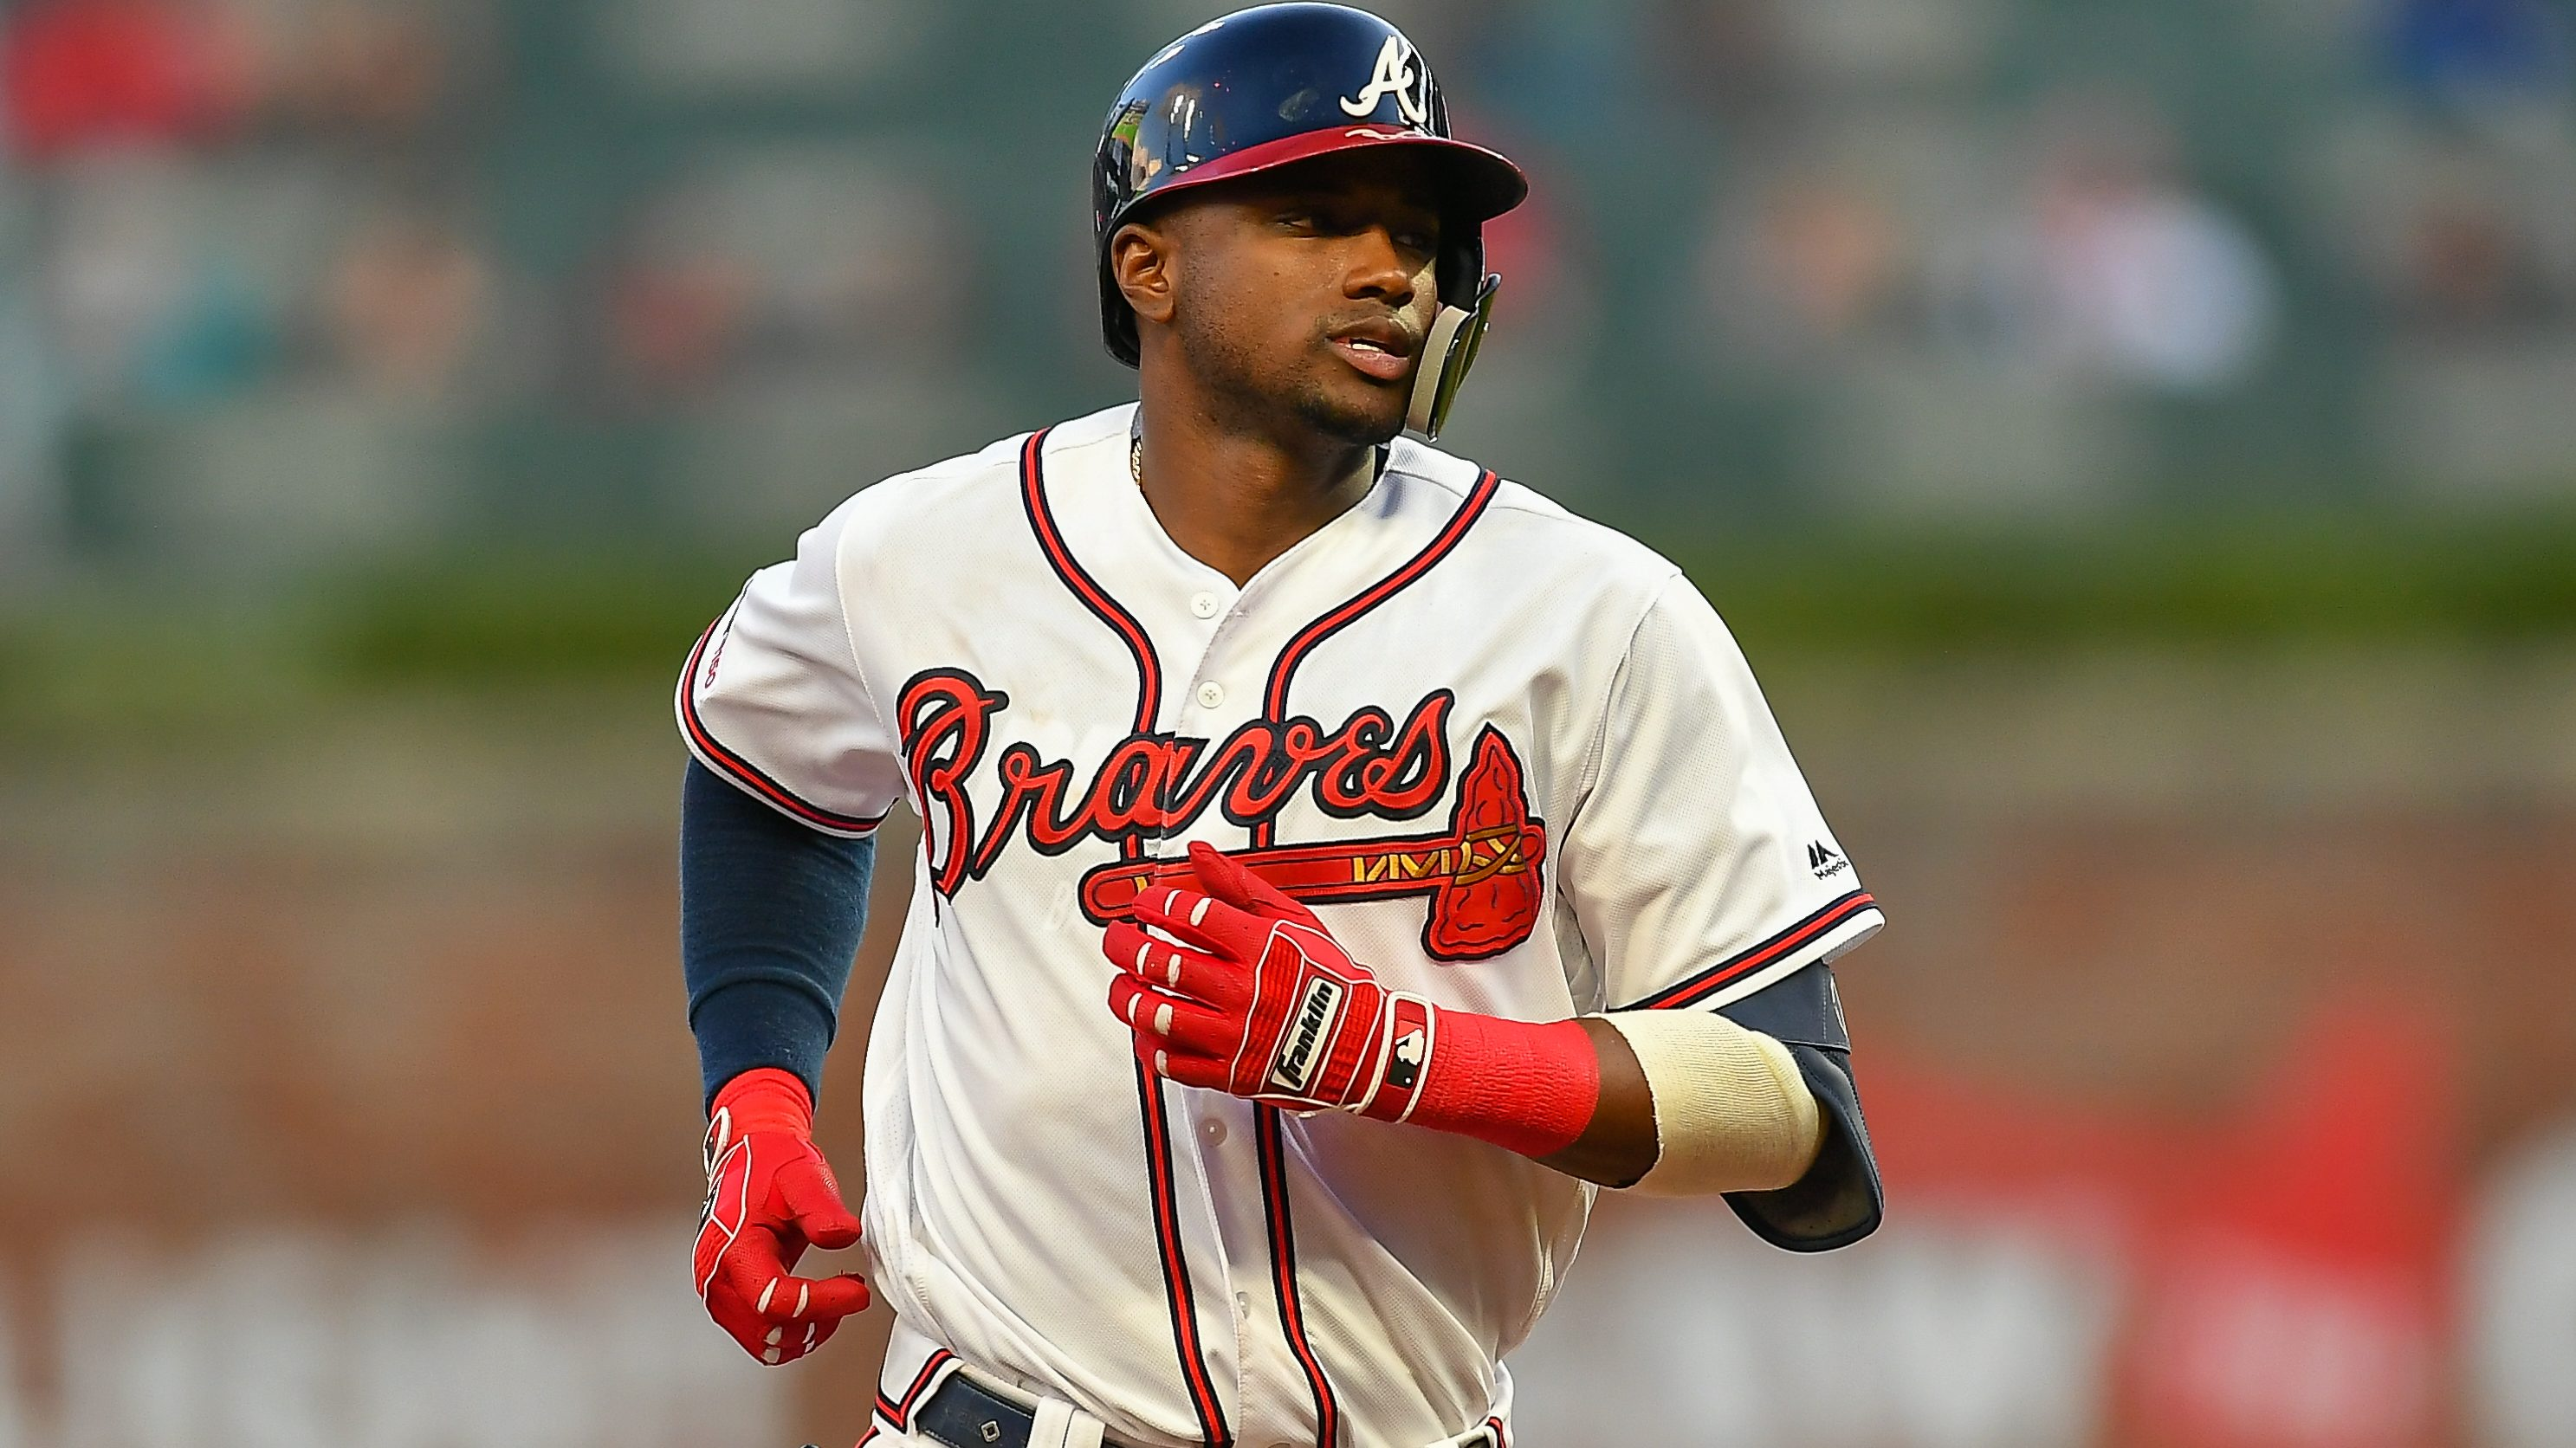 Adeiny Hechavarría rejoins Braves on one-year, $1 million deal